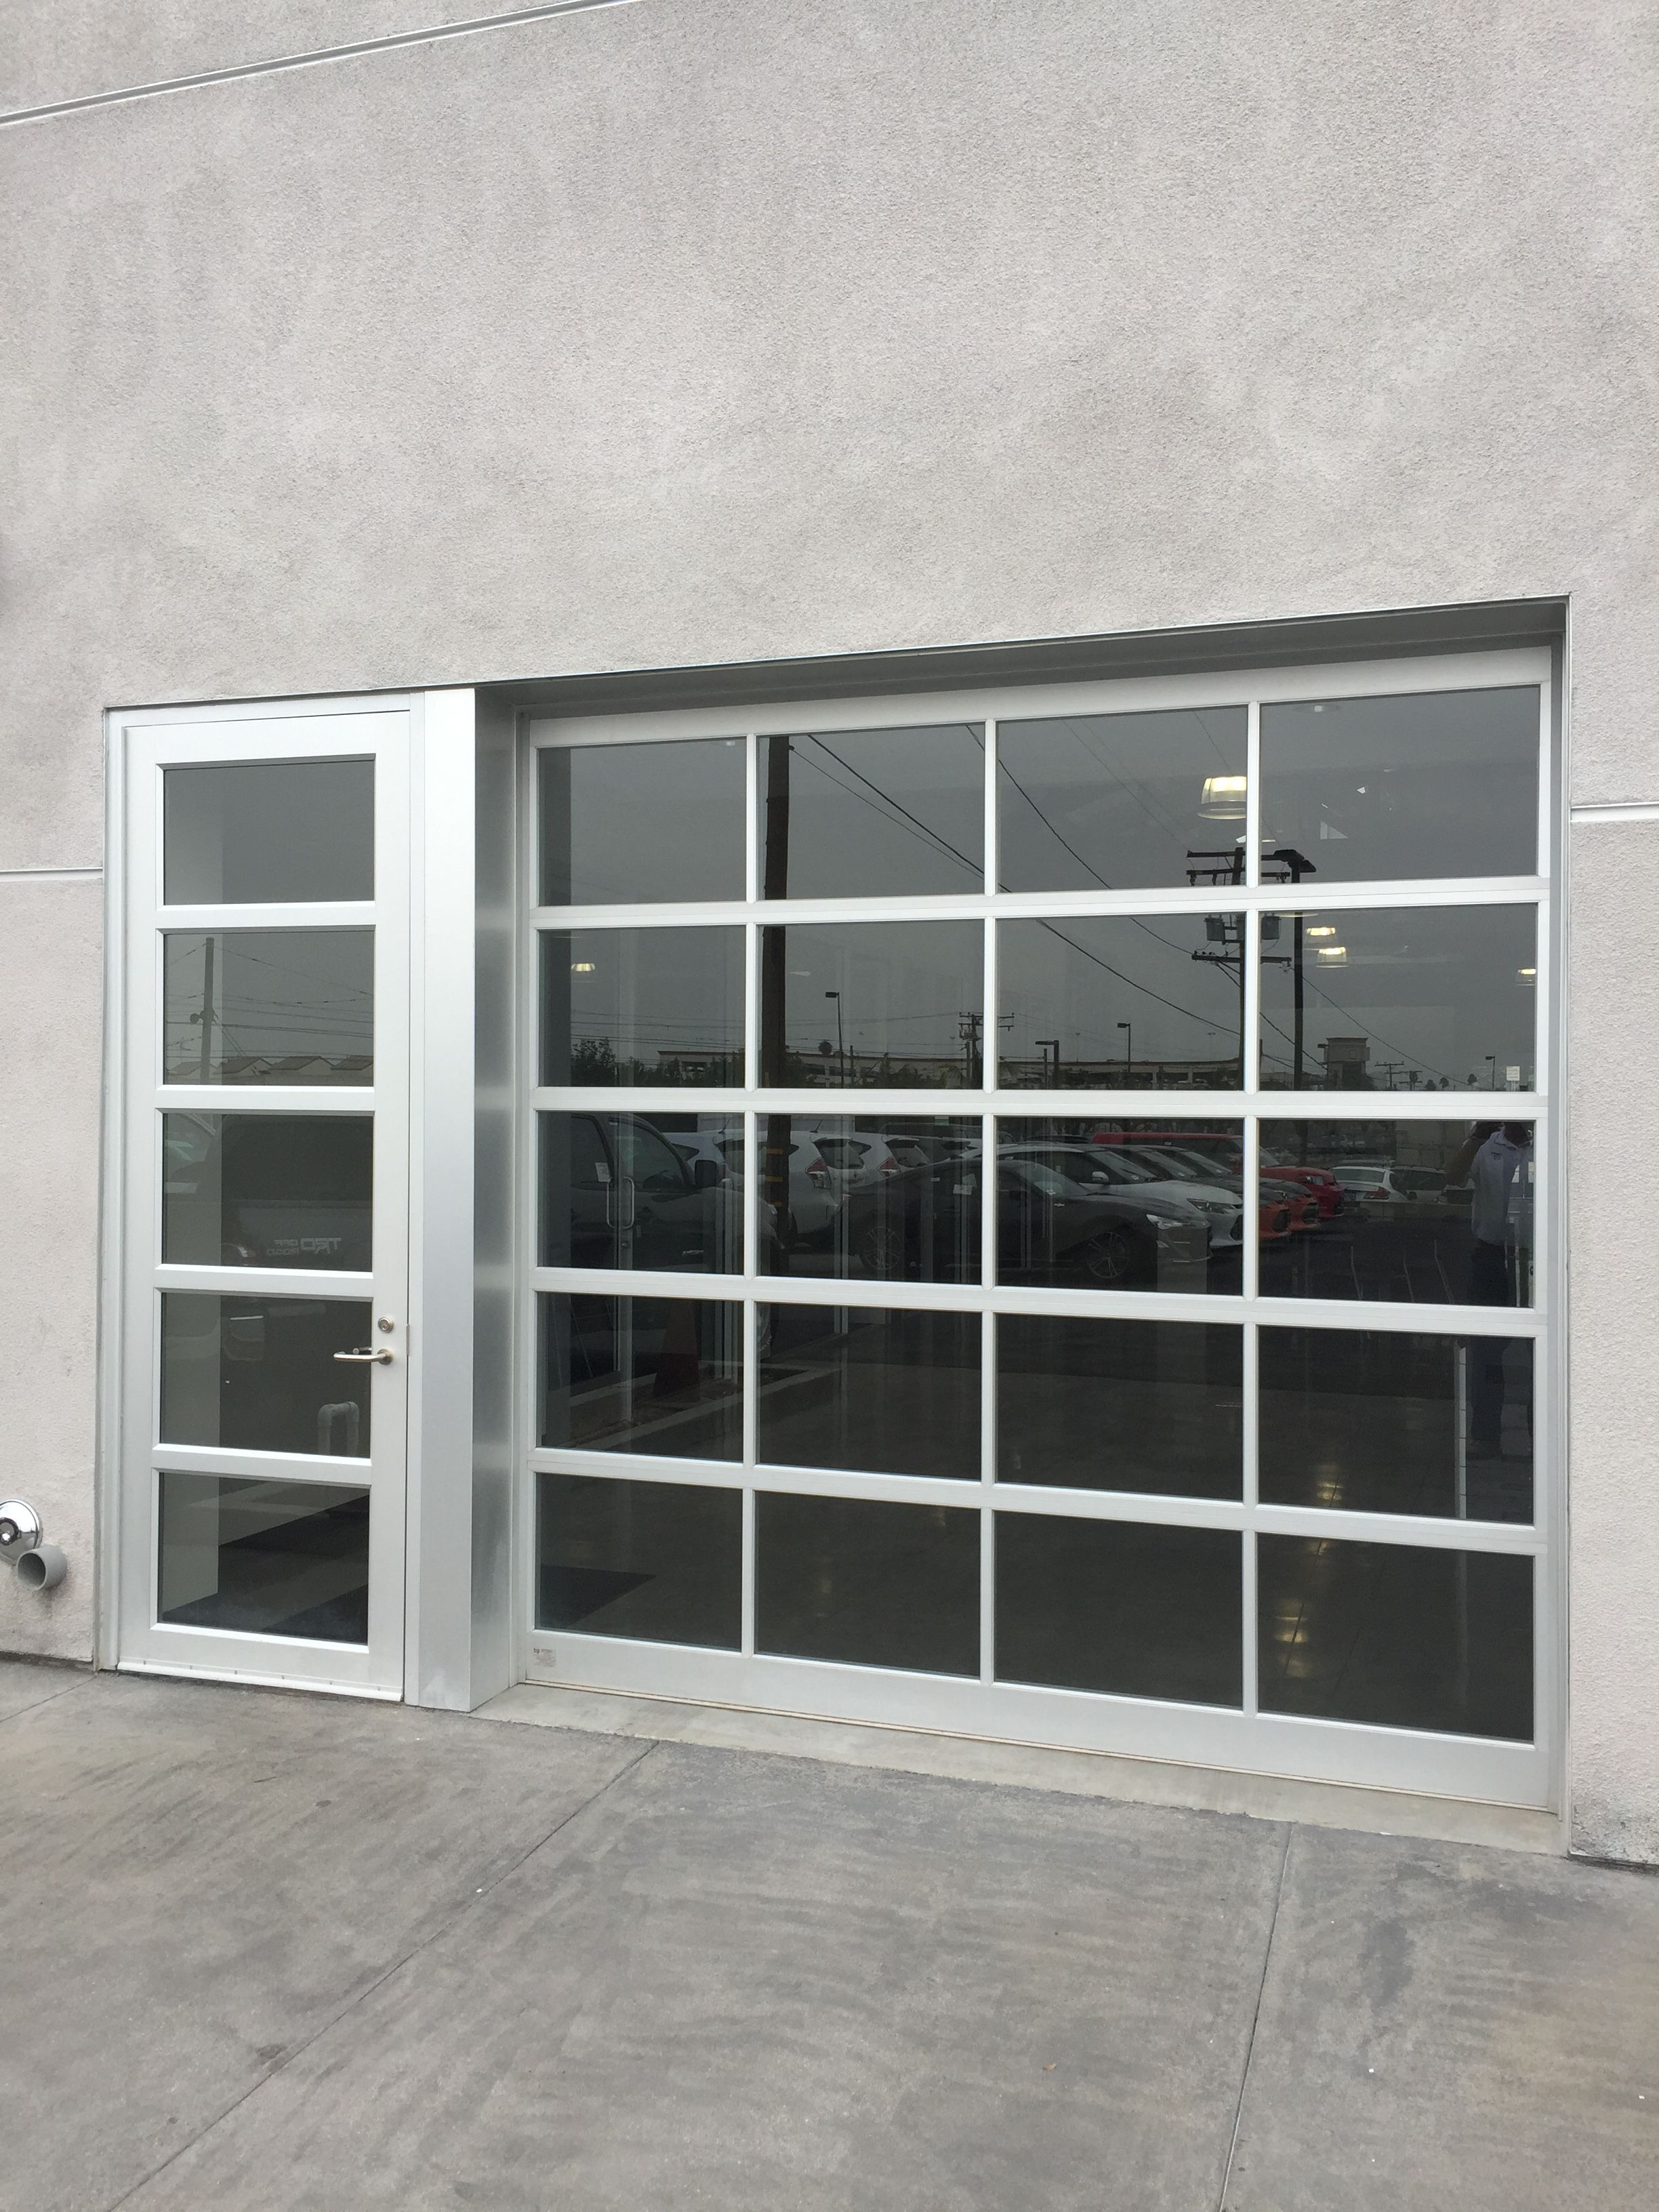 Glass Garage Doors Store Fronts And Combos With Images Garage Doors Glass Garage Door Garage Door Store